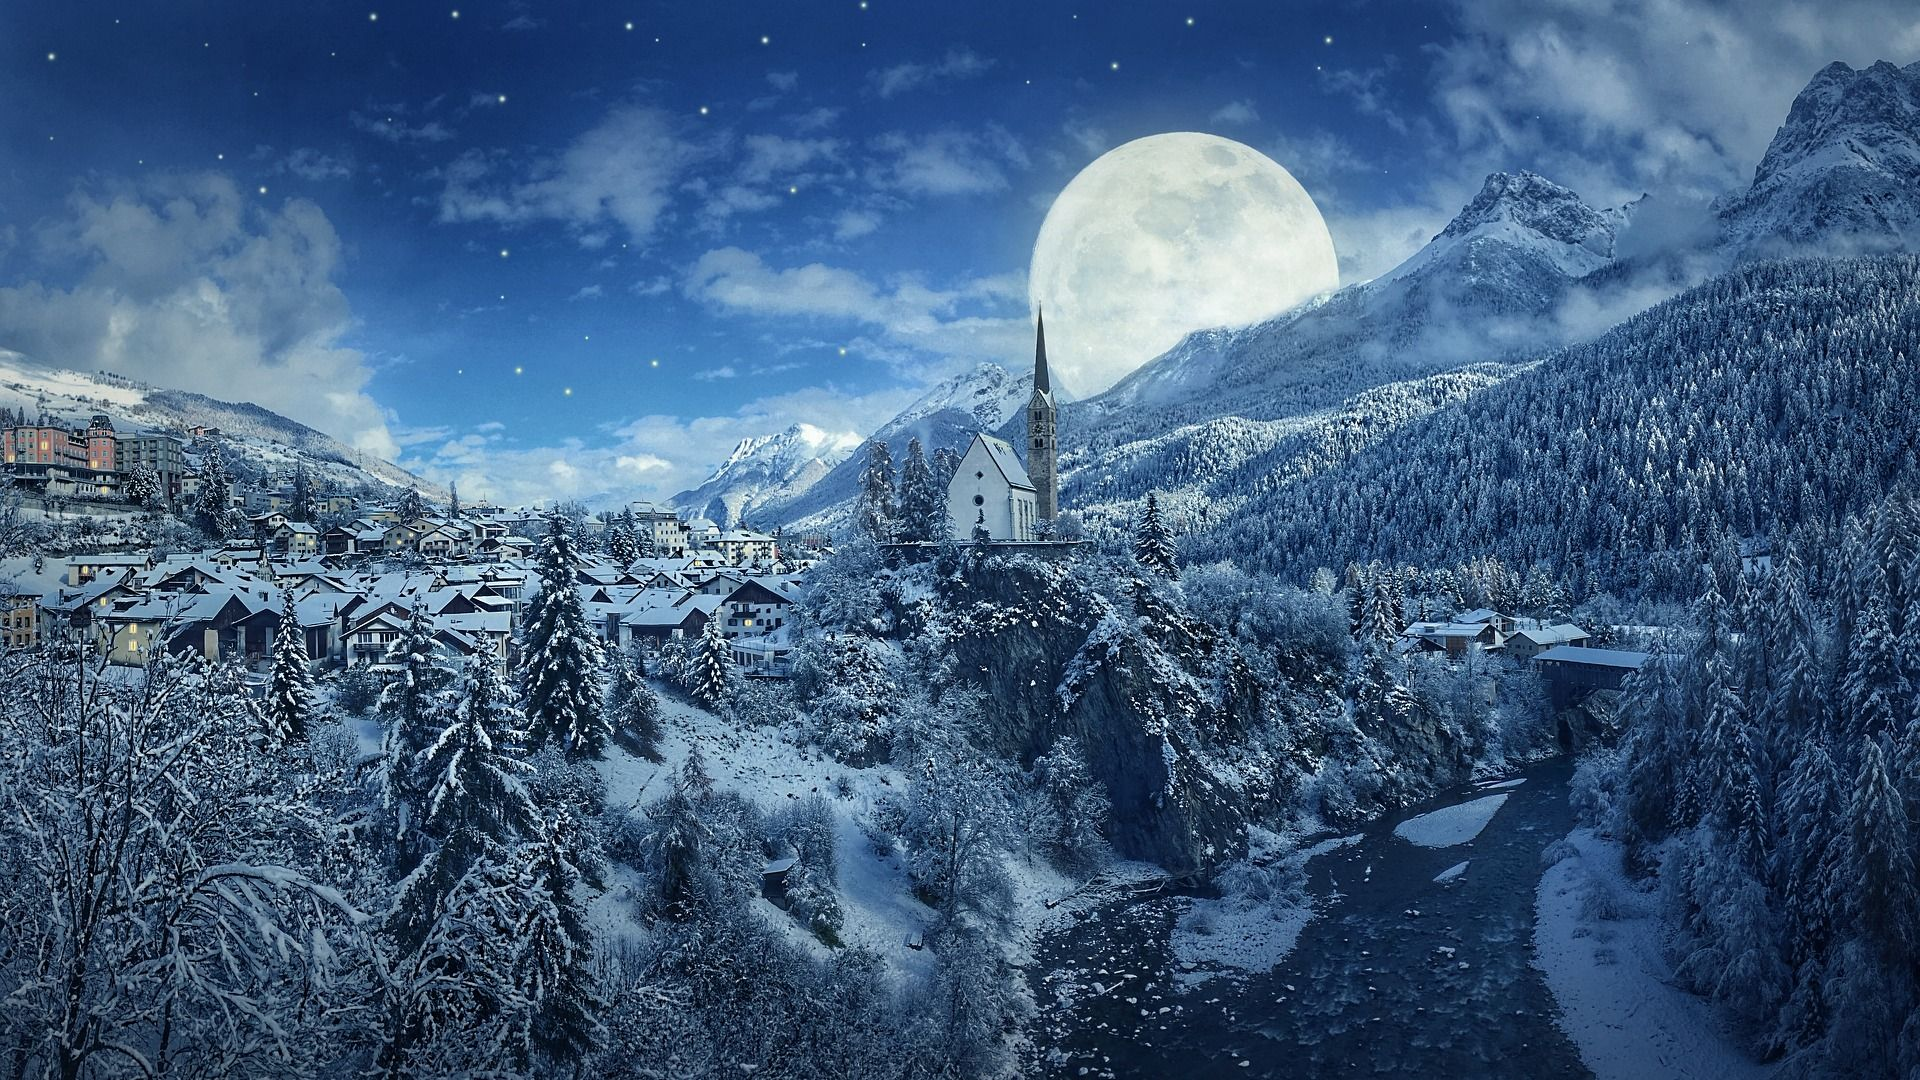 Winter Night Snow Mountains and Moon Wallpaper